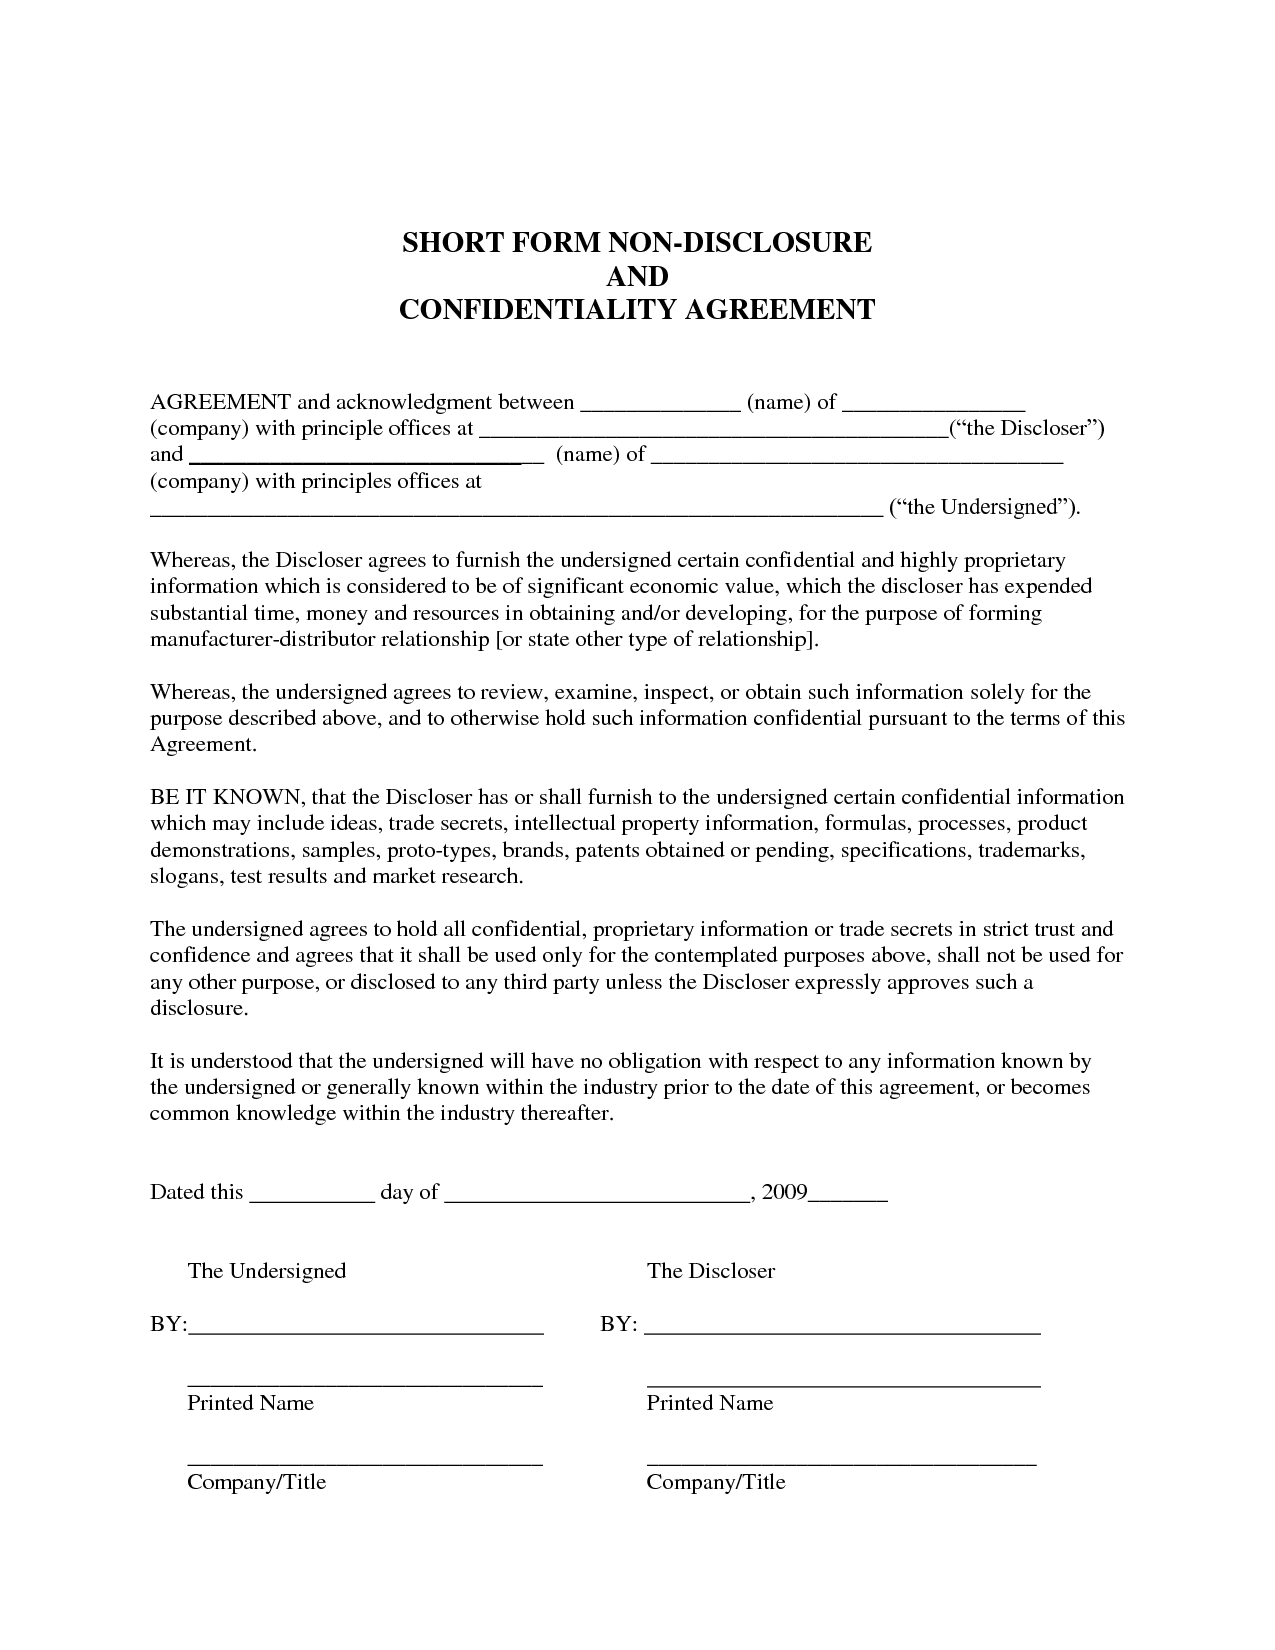 Sample non disclosure agreement confidentiality for Short non disclosure agreement template